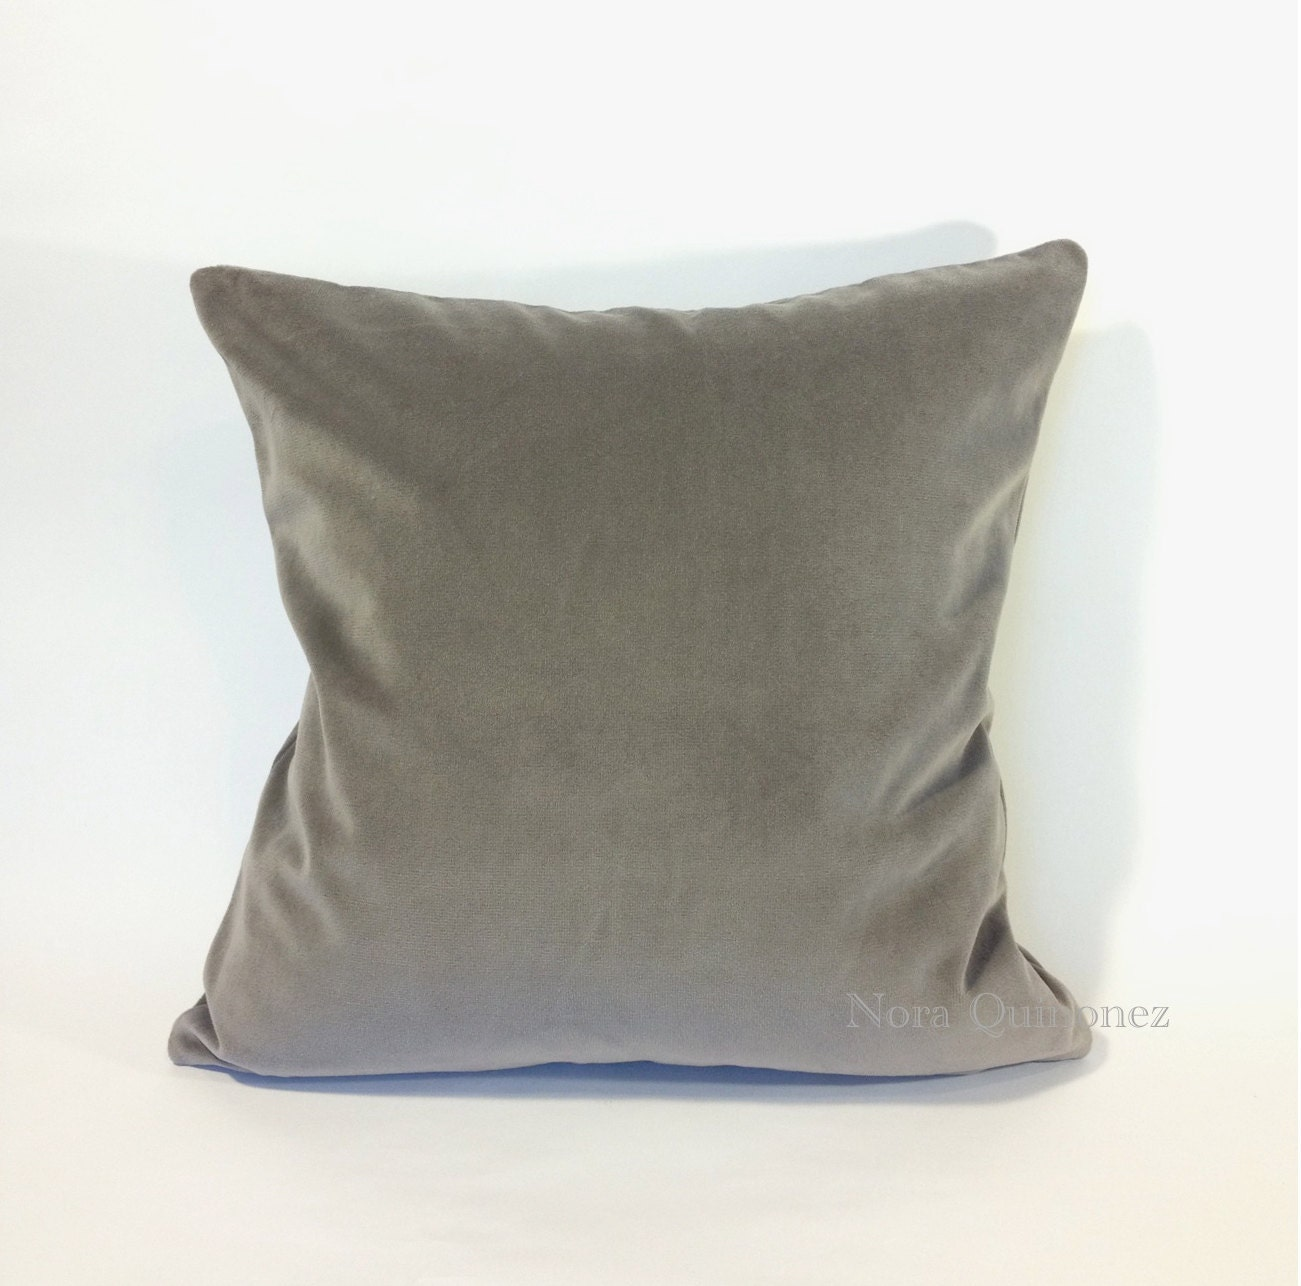 Throw Pillow Covers 26x26 : Gray Cotton Velvet Pillow Cover - Decorative Accent Throw Pillows - Invisible Zipper Closure ...